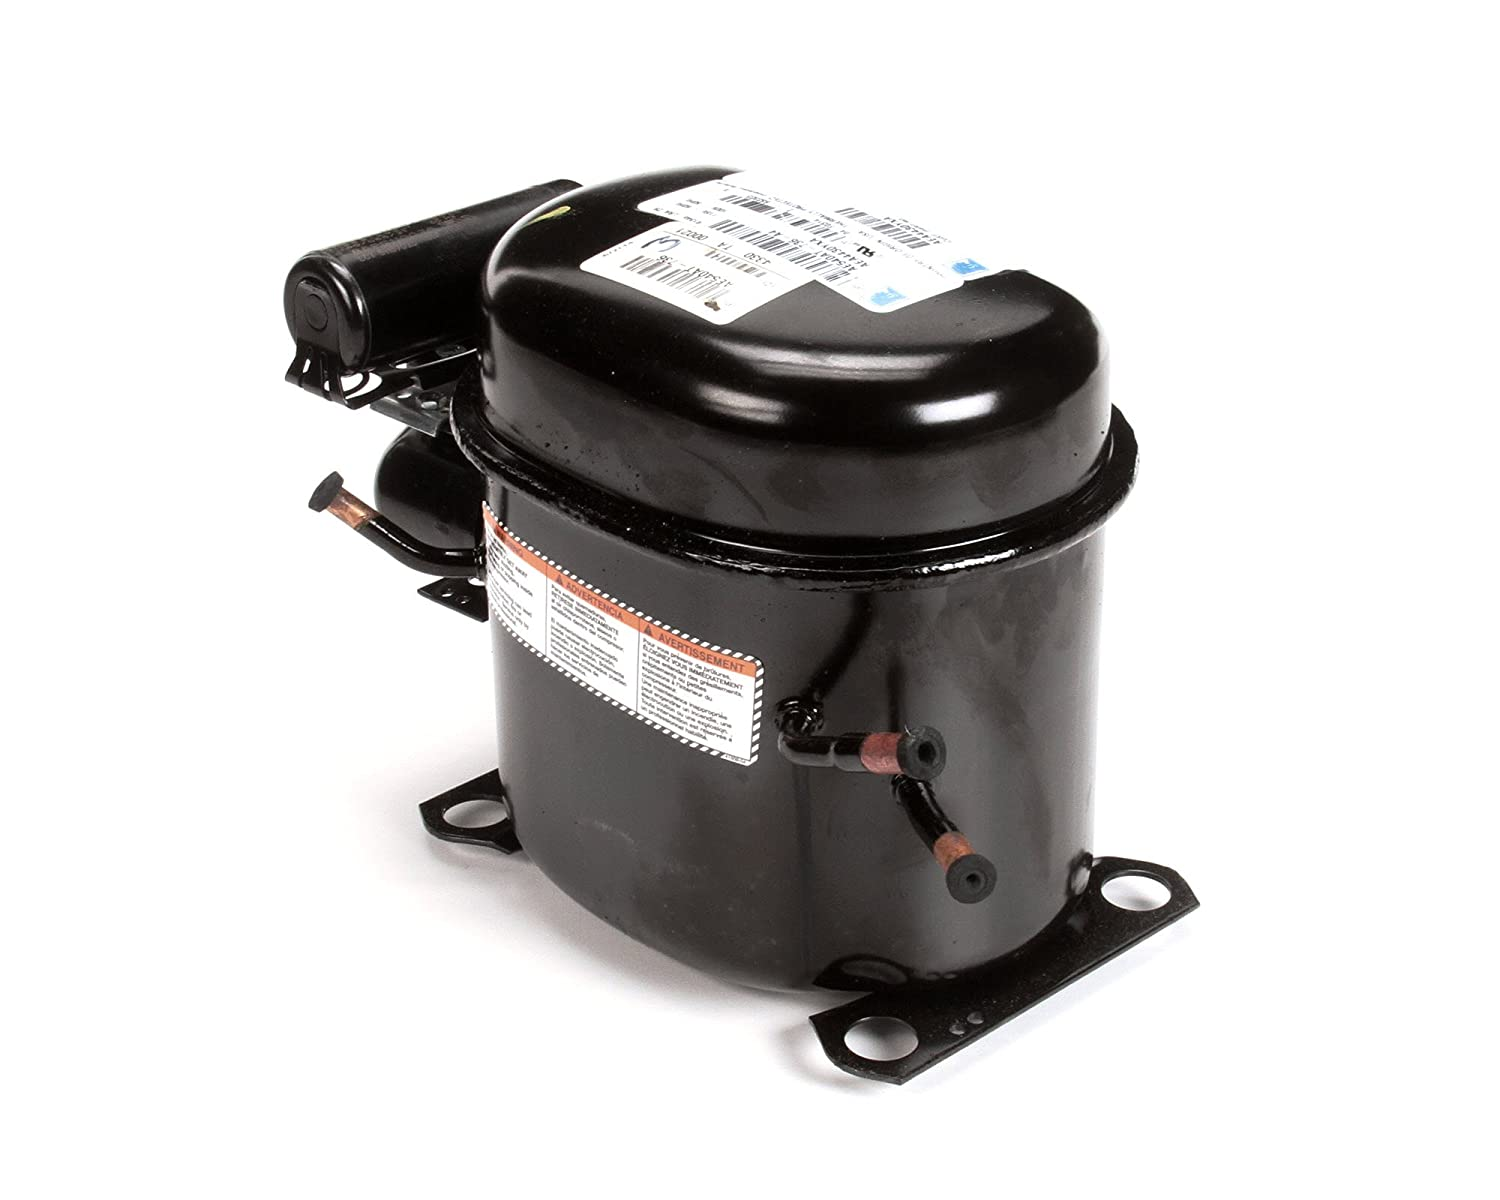 Manitowoc Beverage AEA4430YXA Compressor with Capacitor 1/4 hp, 134 Amp